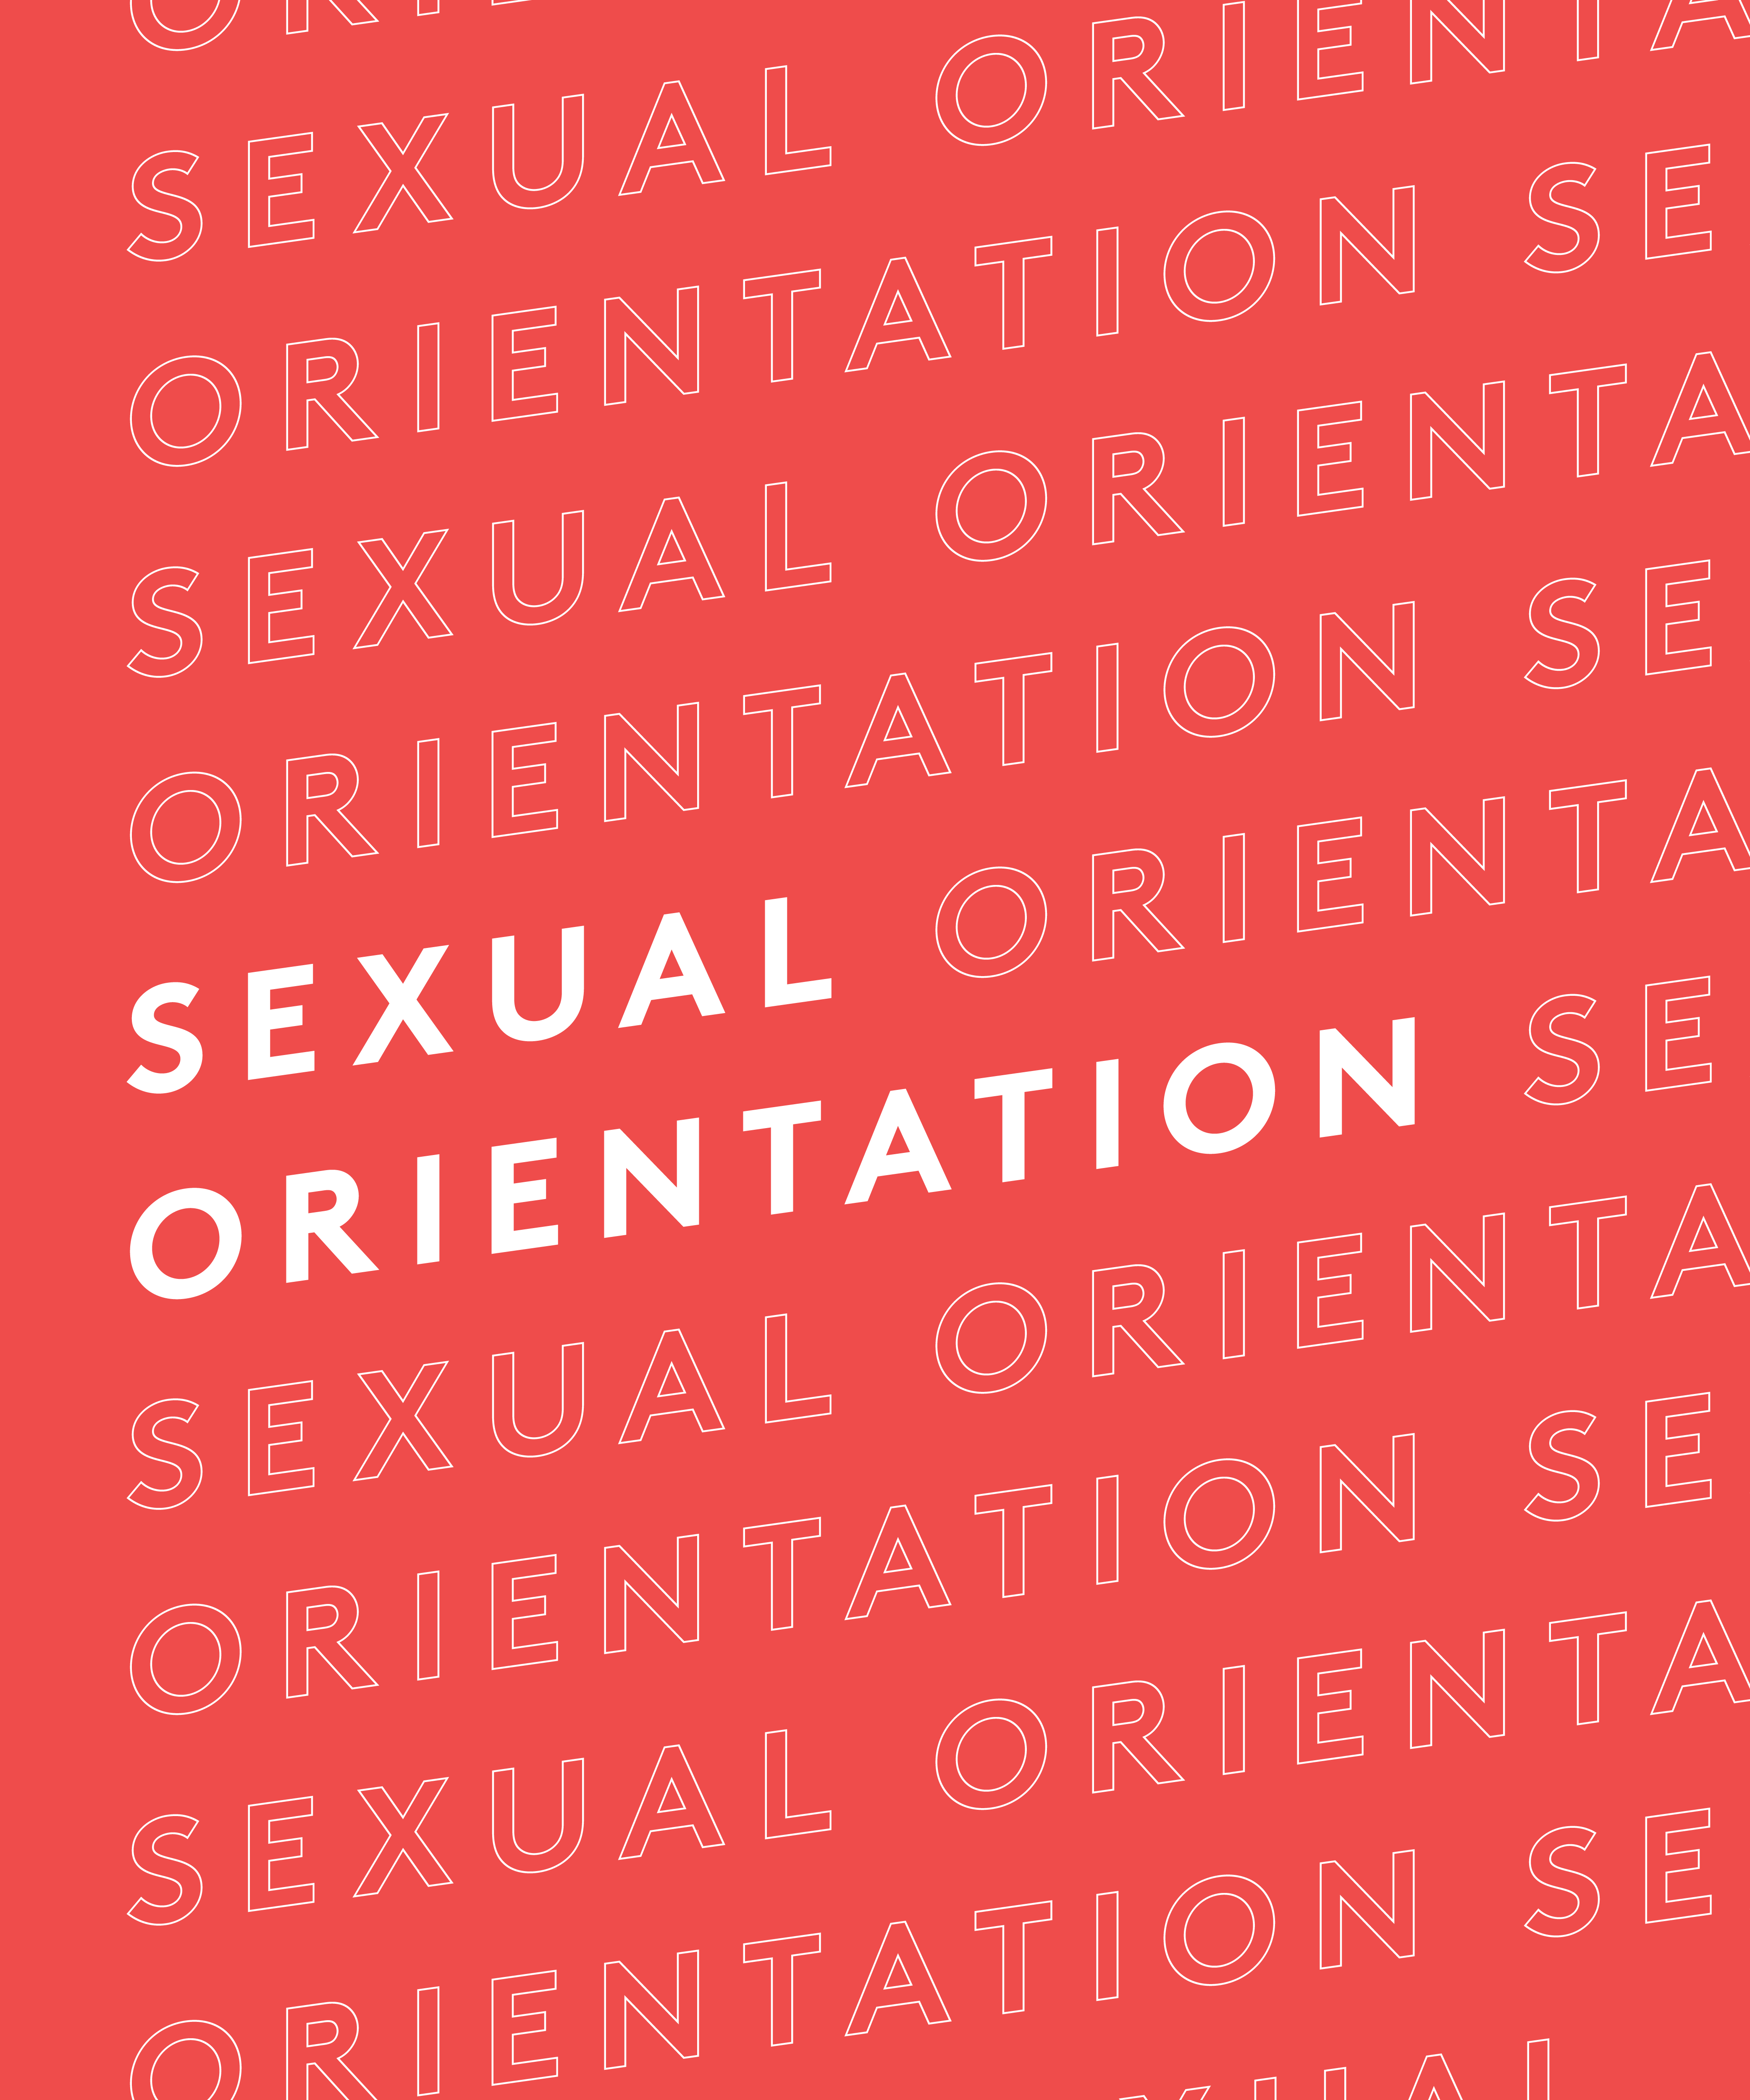 List of all types of sexual orientation